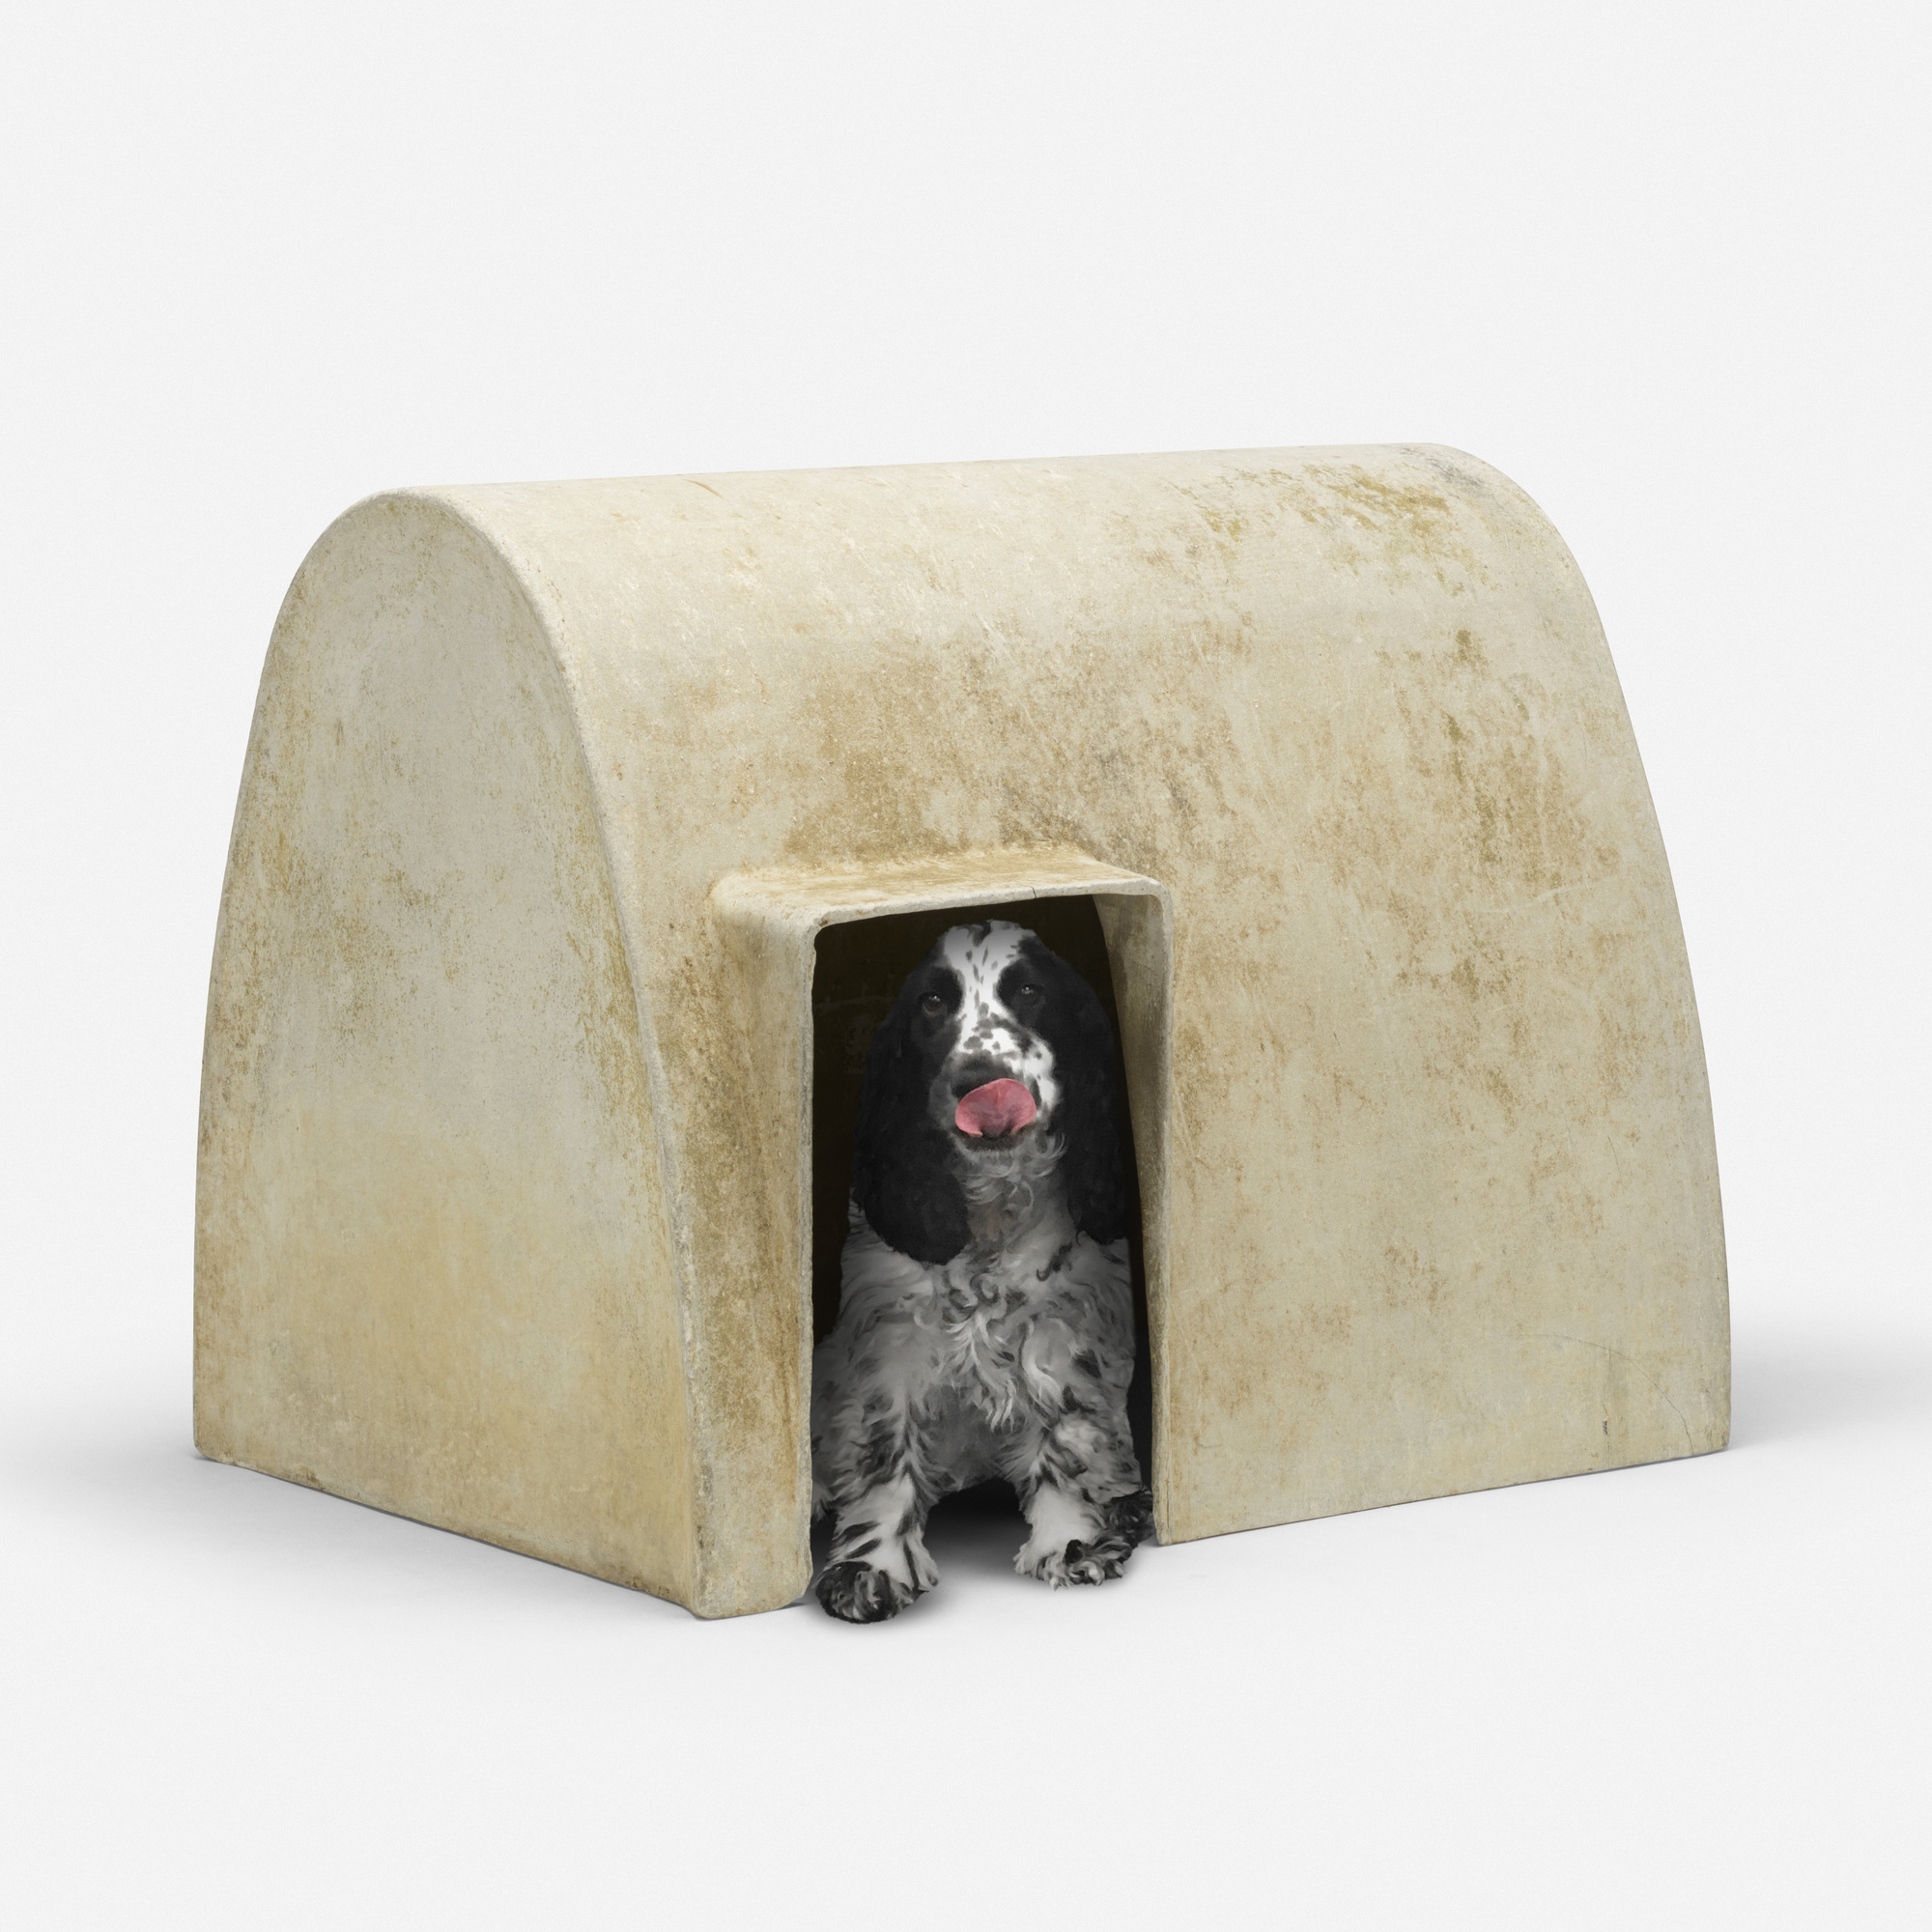 269 Willy Guhl Dog House Design 26 March 2020 Auctions Wright Auctions Of Art And Design